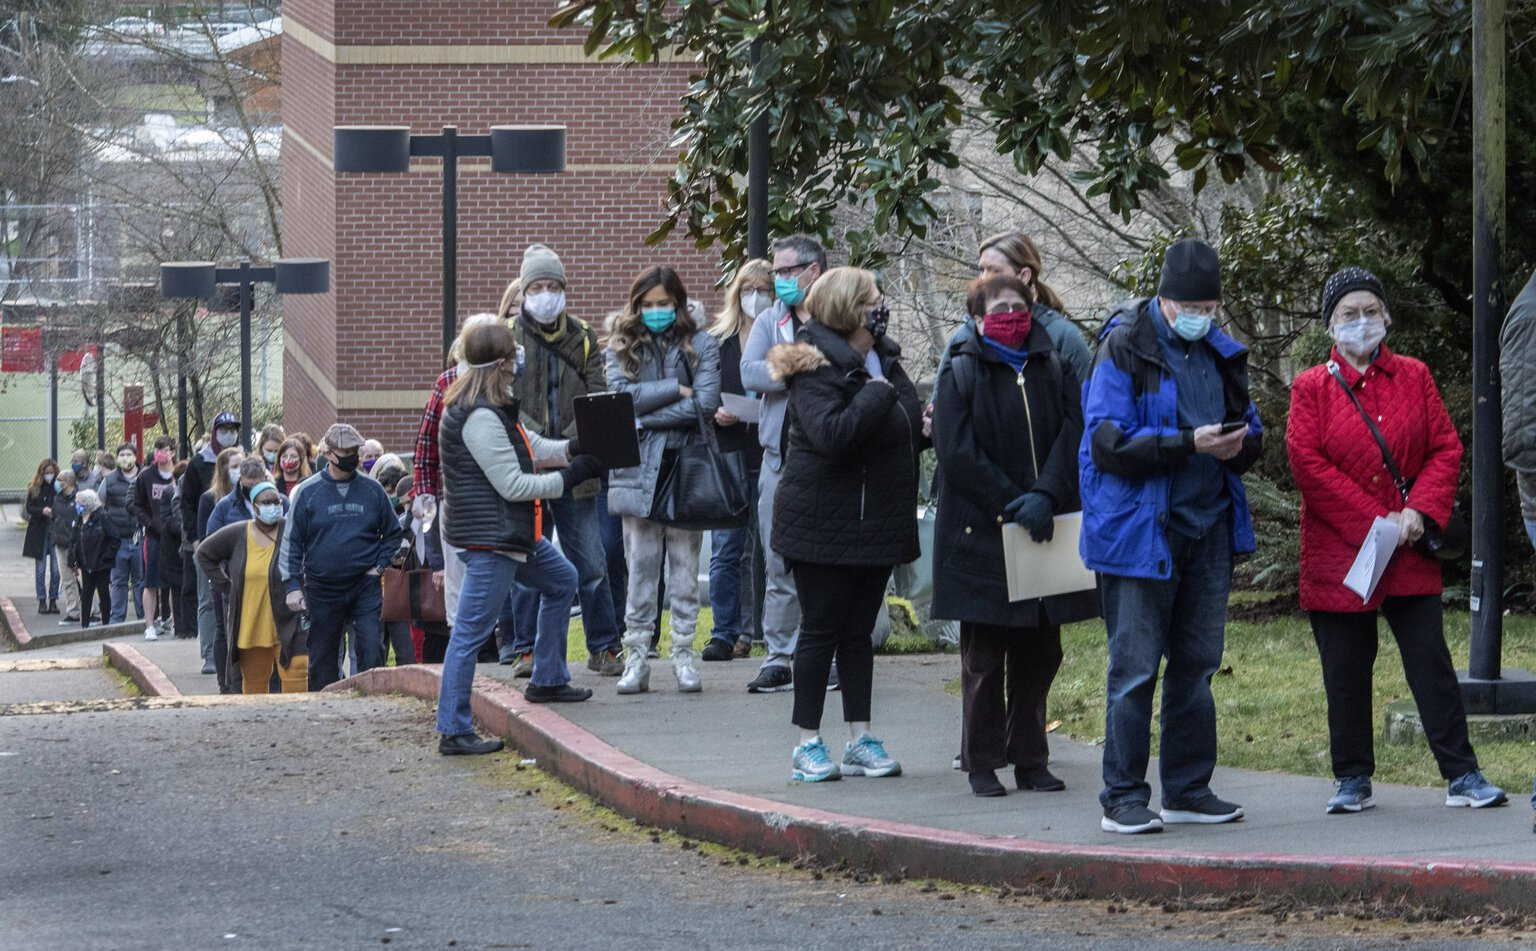 A volunteer walks down the line of people waiting on the Seattle University campus for their COVID-19 vaccinations last month. (Steve Ringman / The Seattle Times)